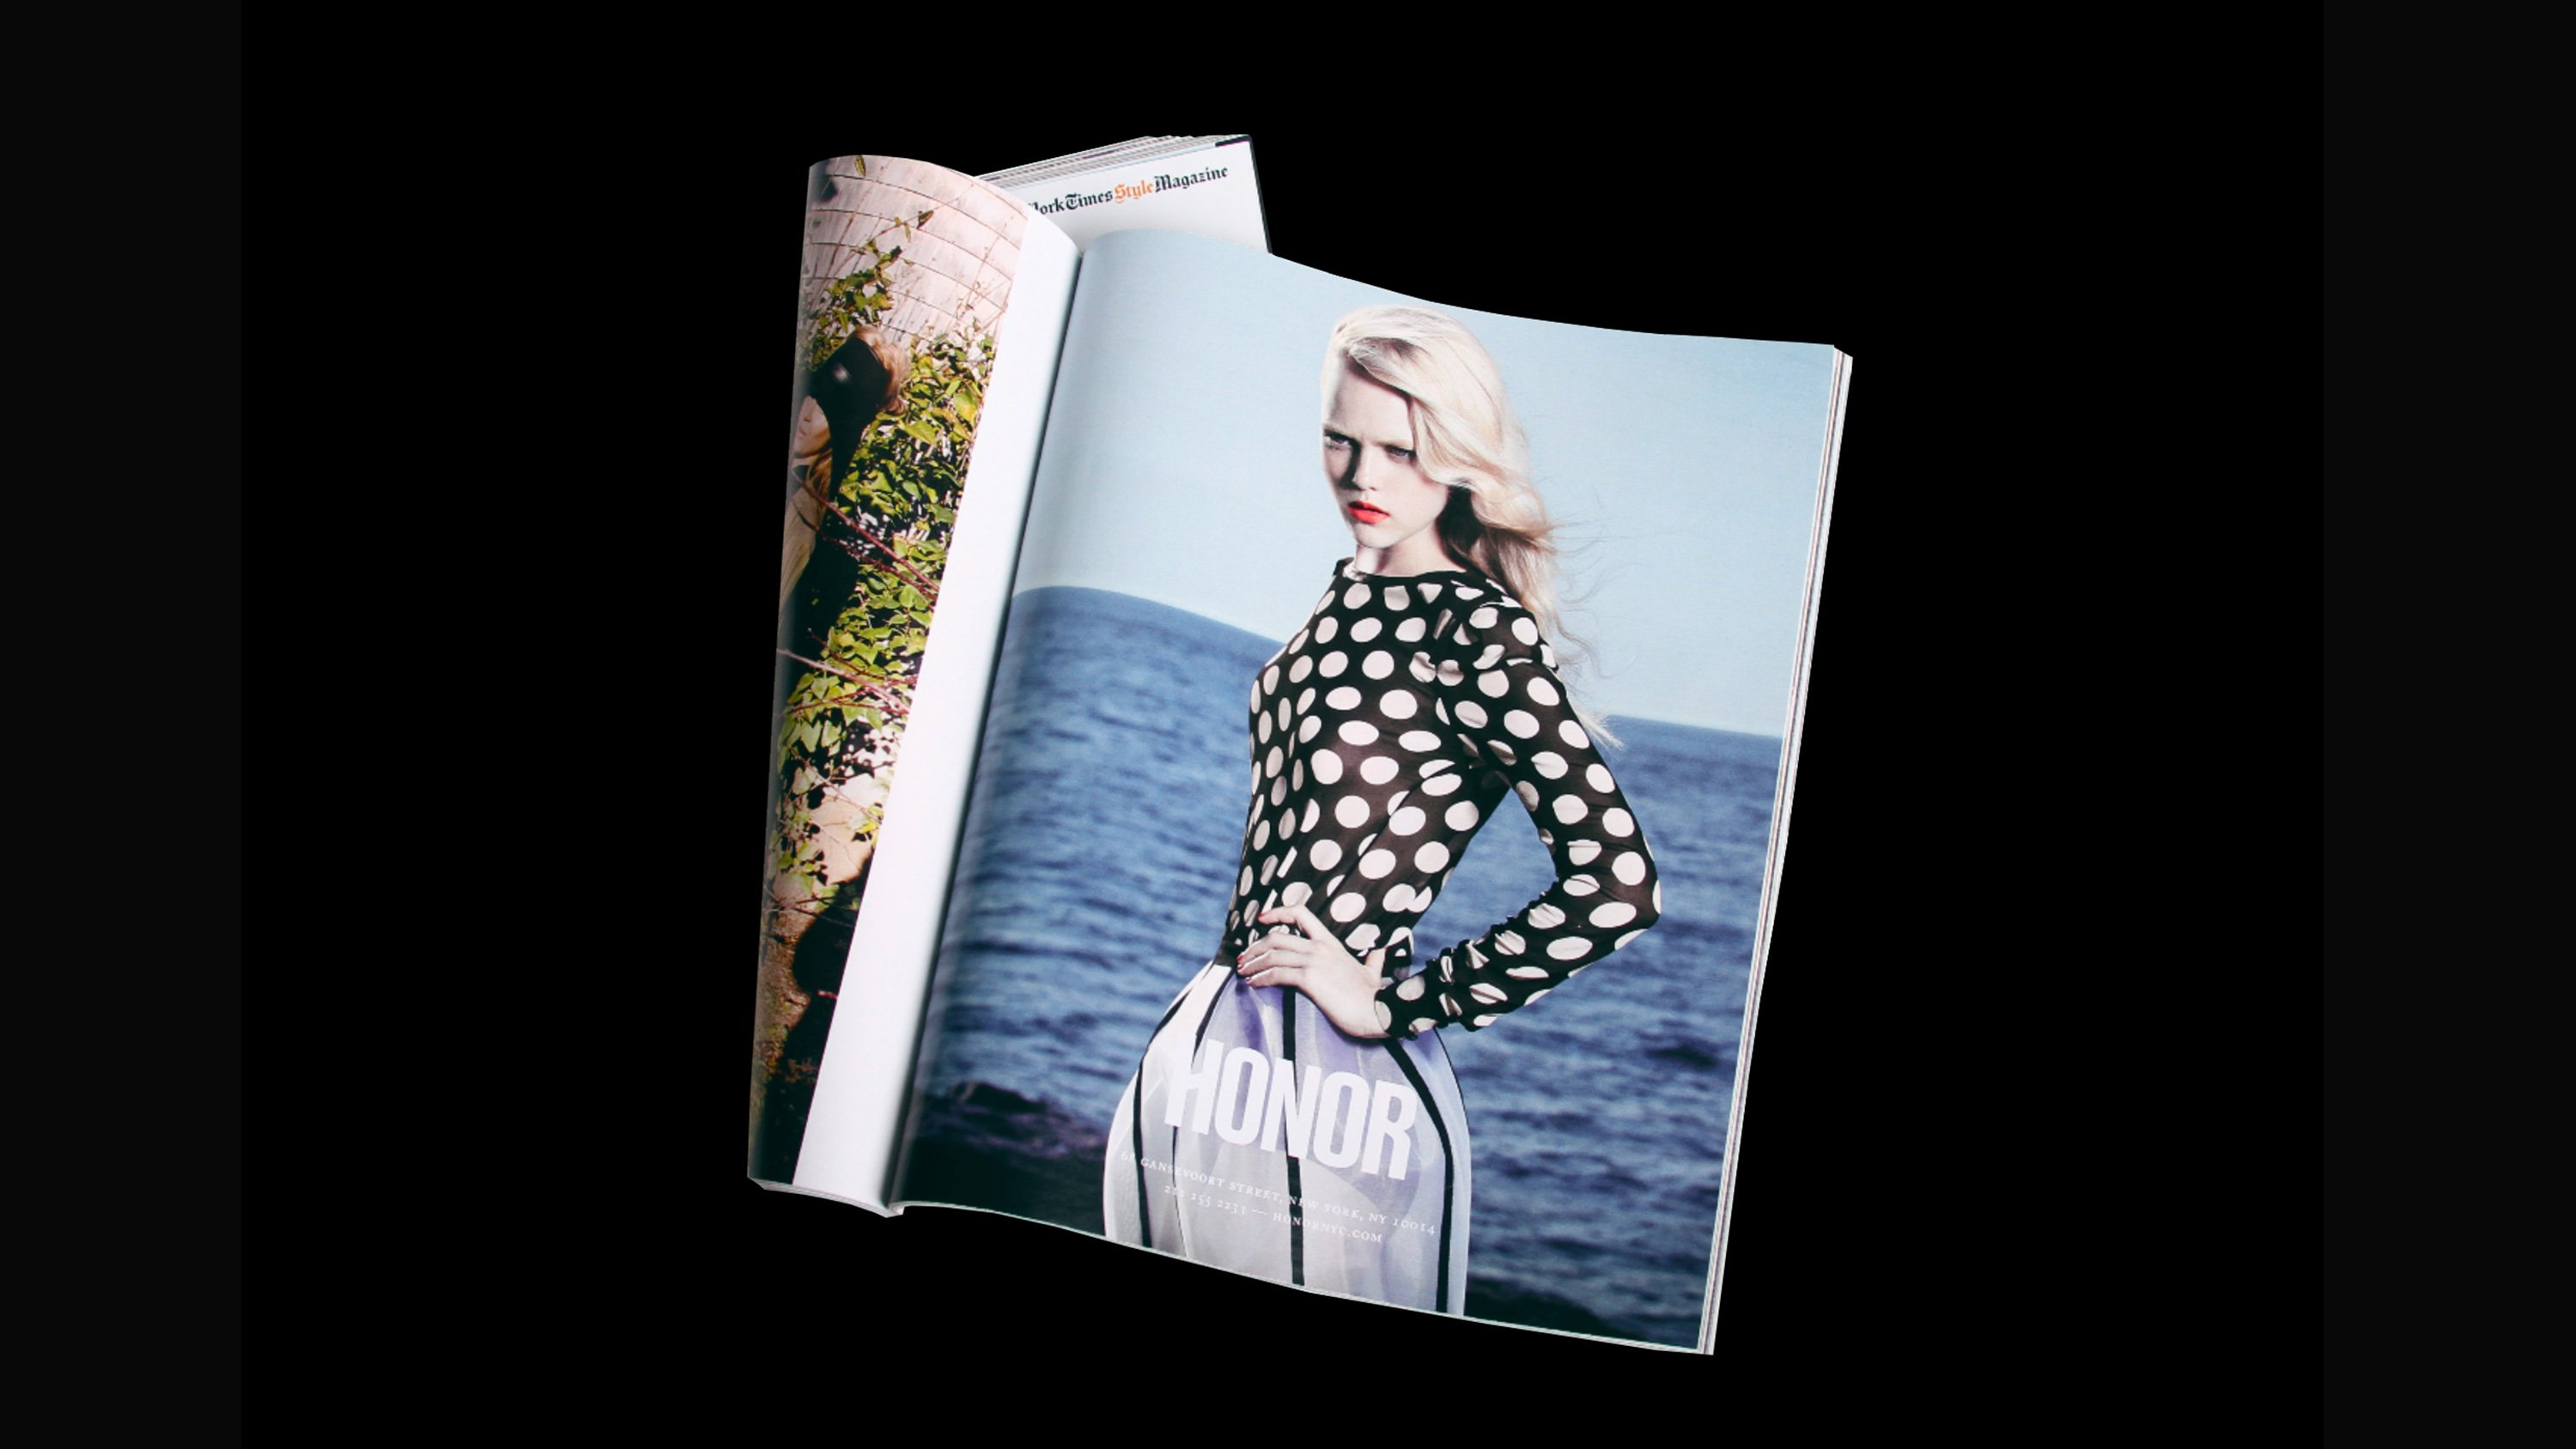 Honor SS12 Campaign ad in magazine, branding by RoAndCo